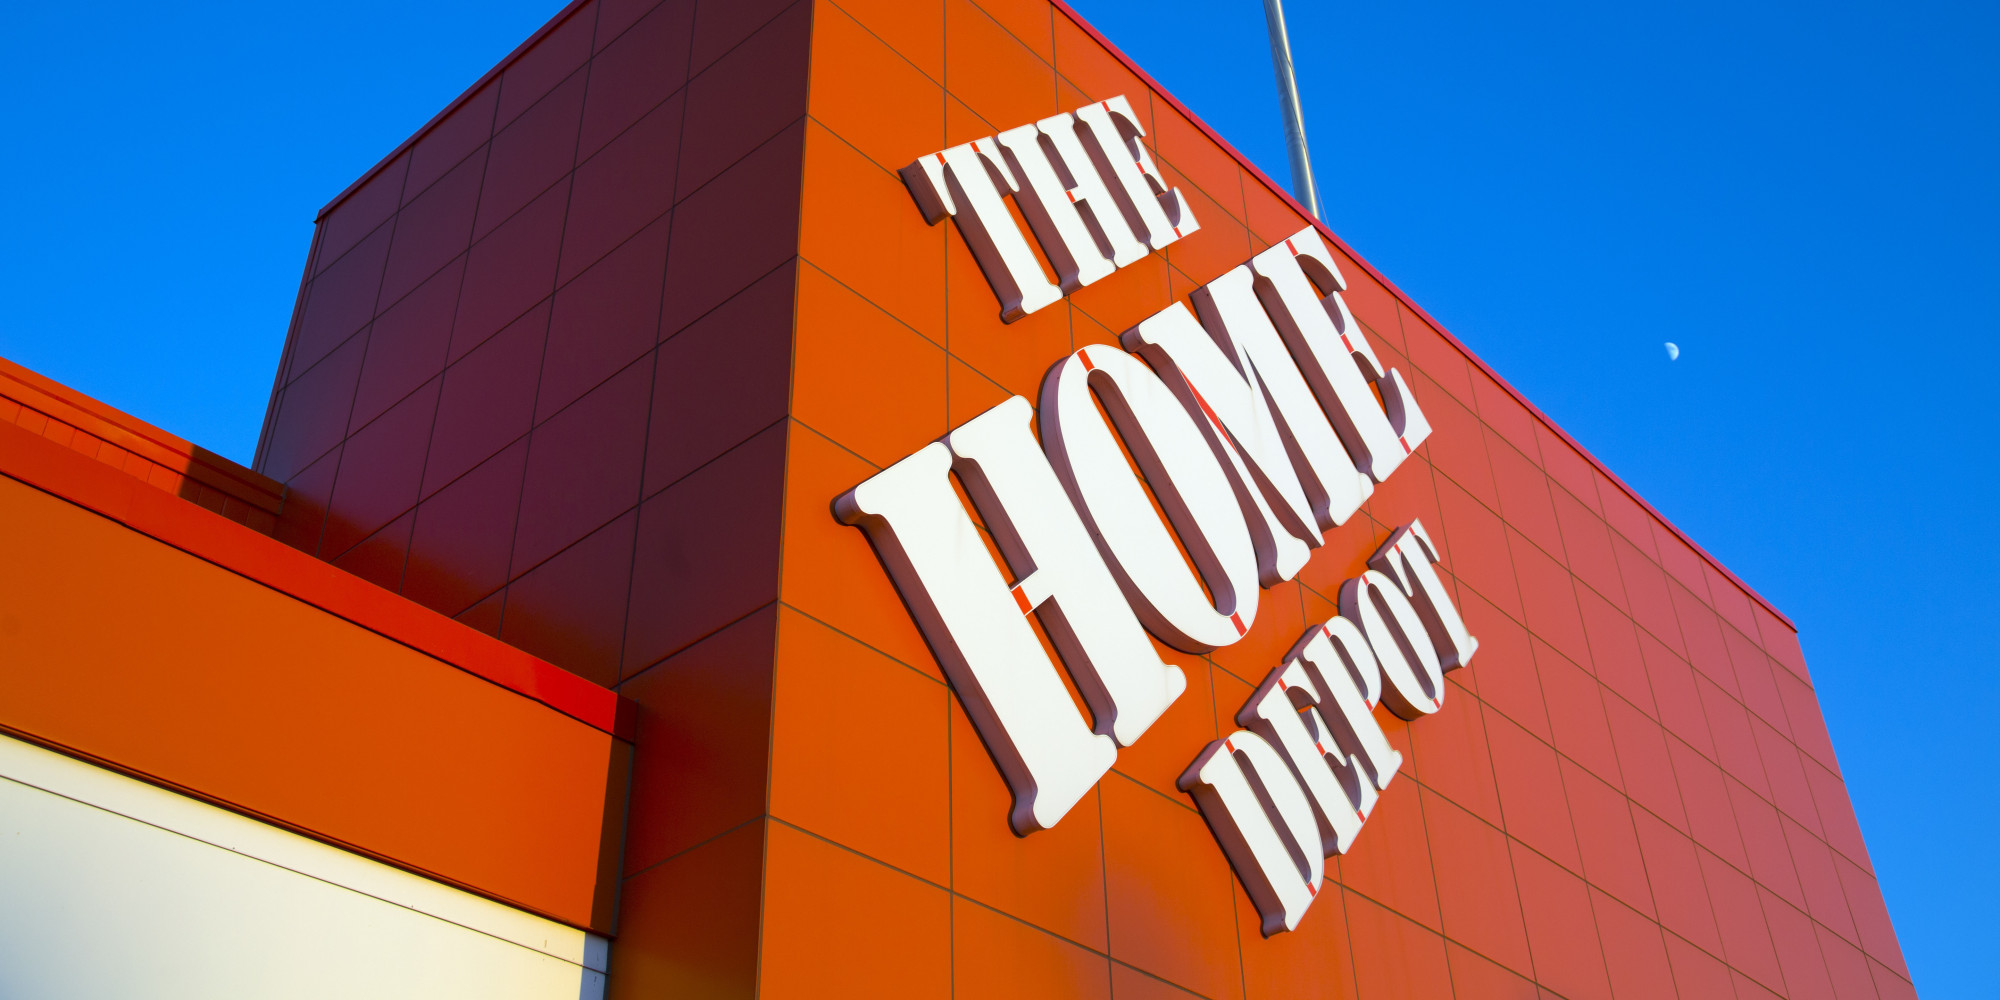 Home Depot Canada Confirms It's Part Of Credit Card Breach ...